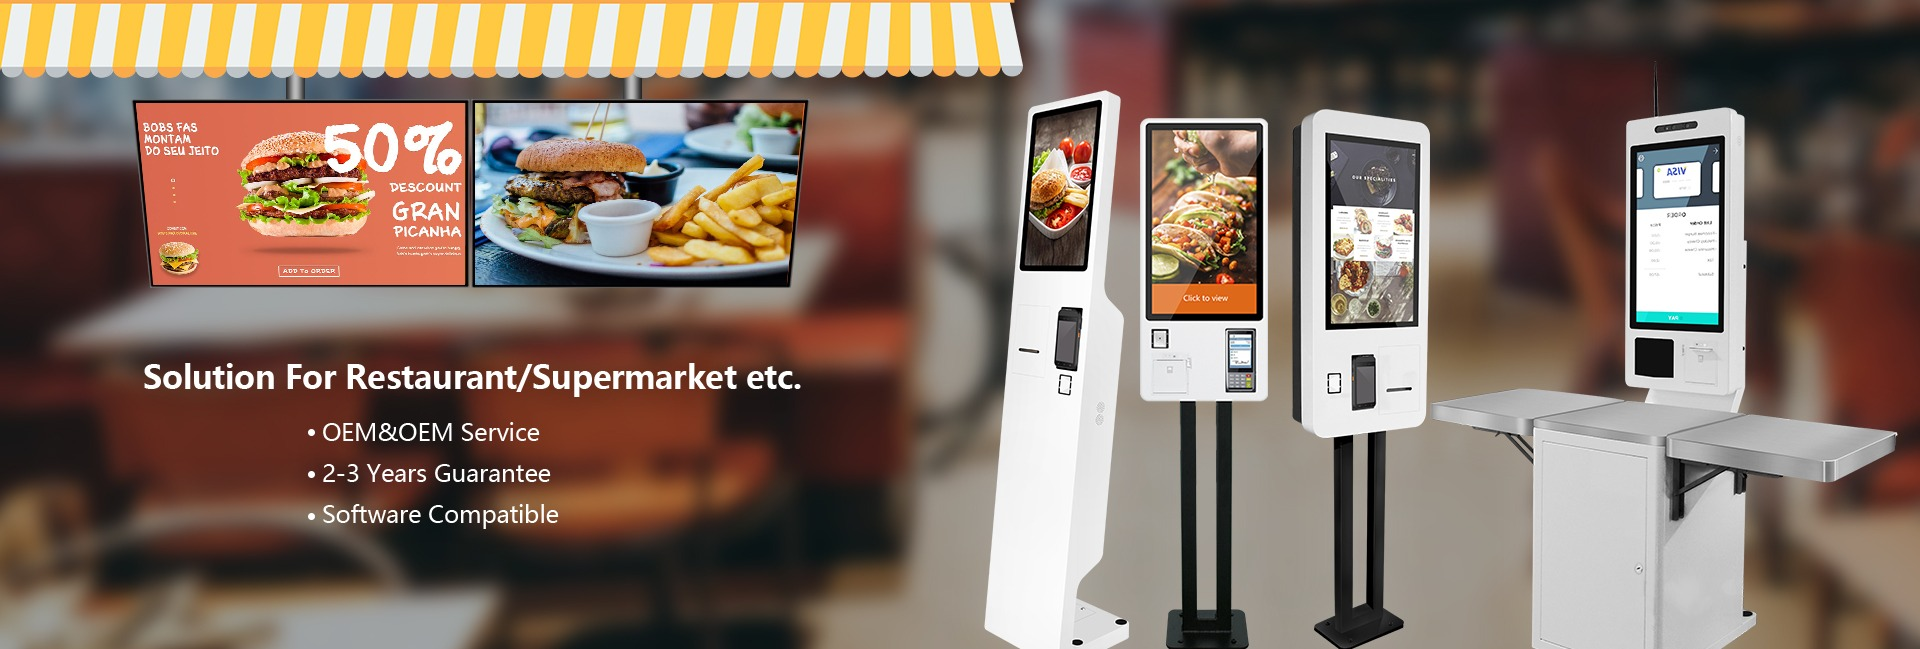 online ordering app Digital Screens and self order kiosk